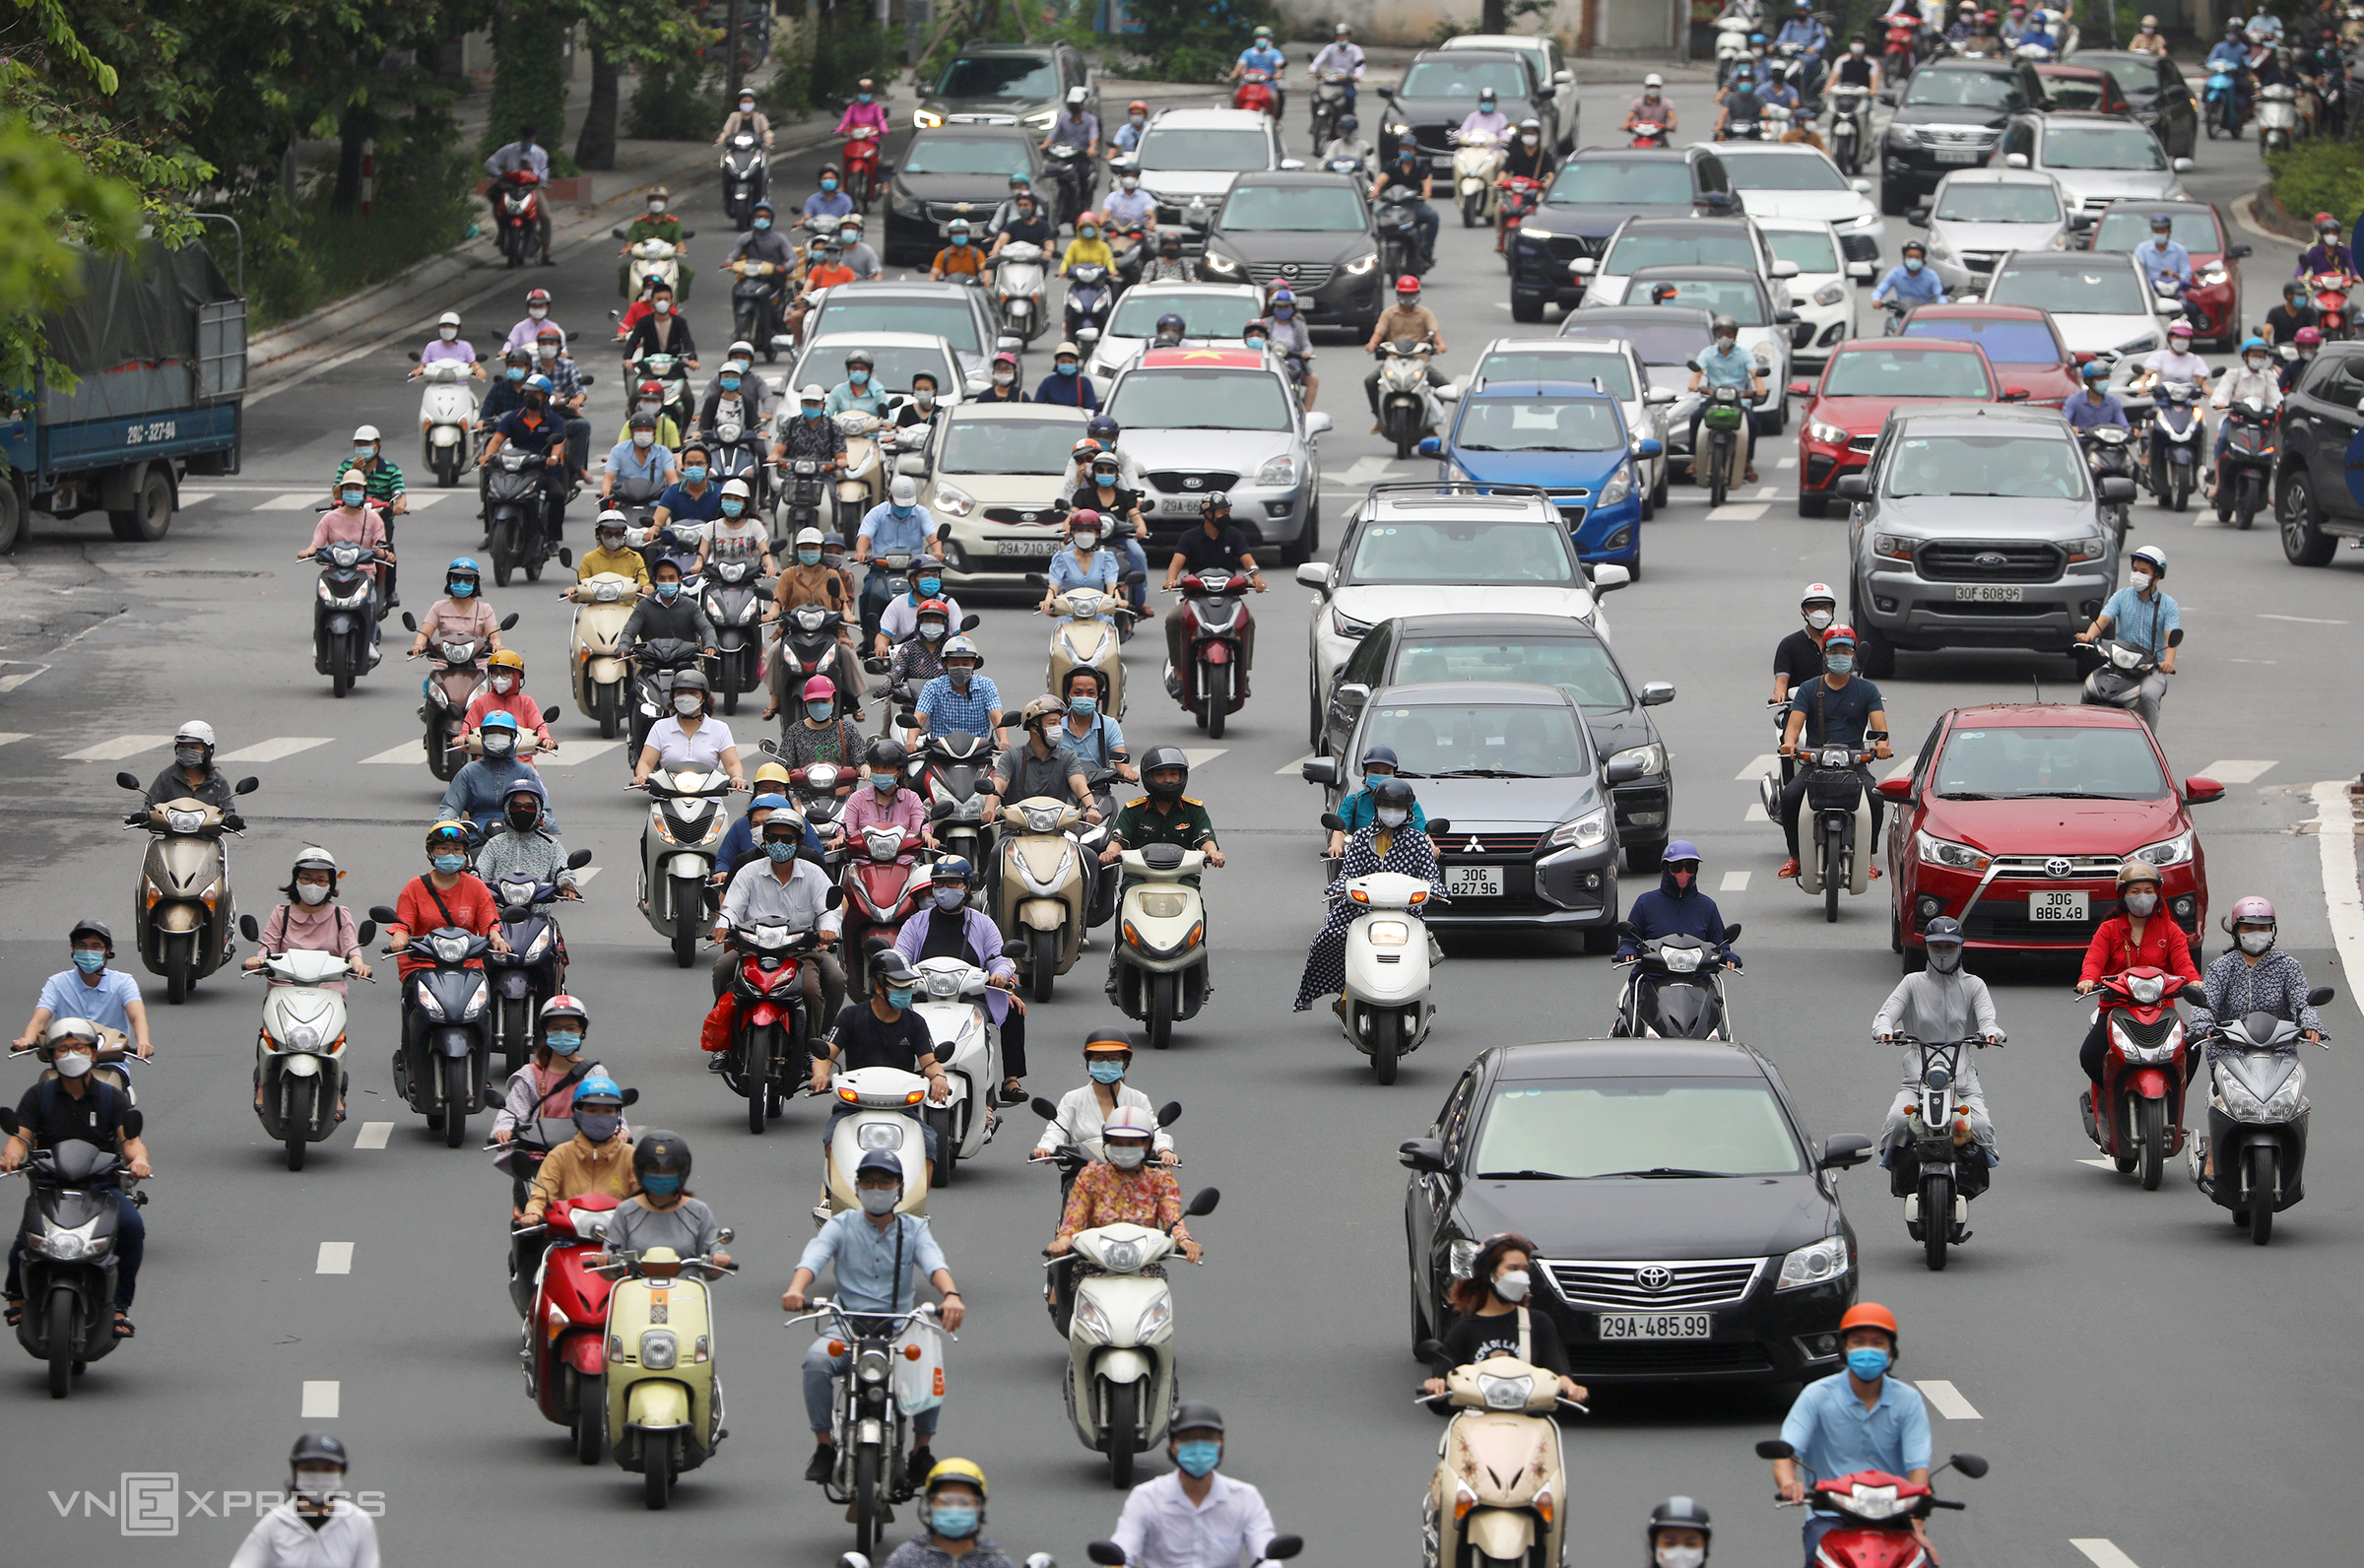 Vehicles fill up Hanoi streets as Covid checkpoints removed